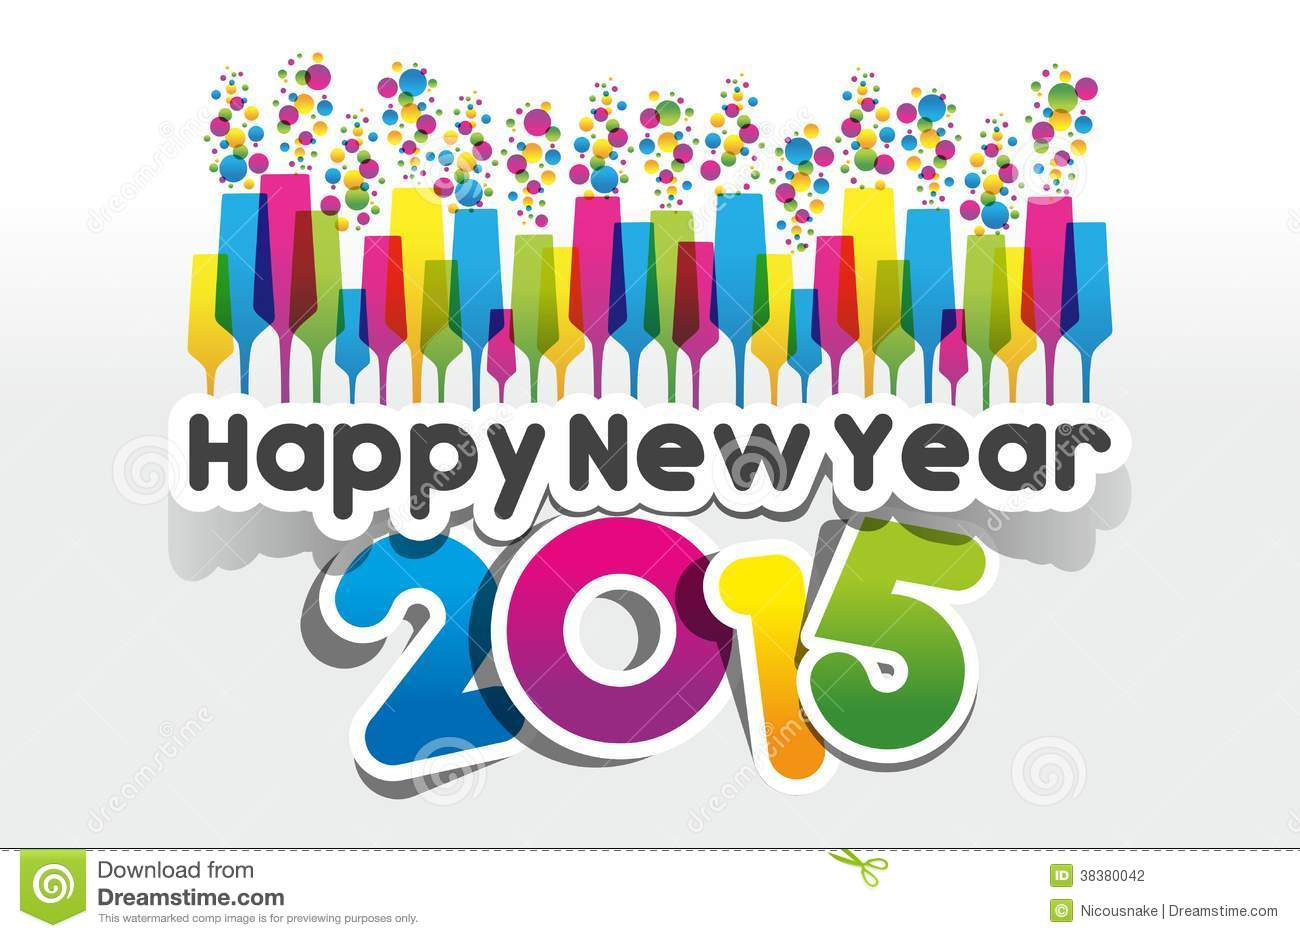 Free Happy New Year 2015 .